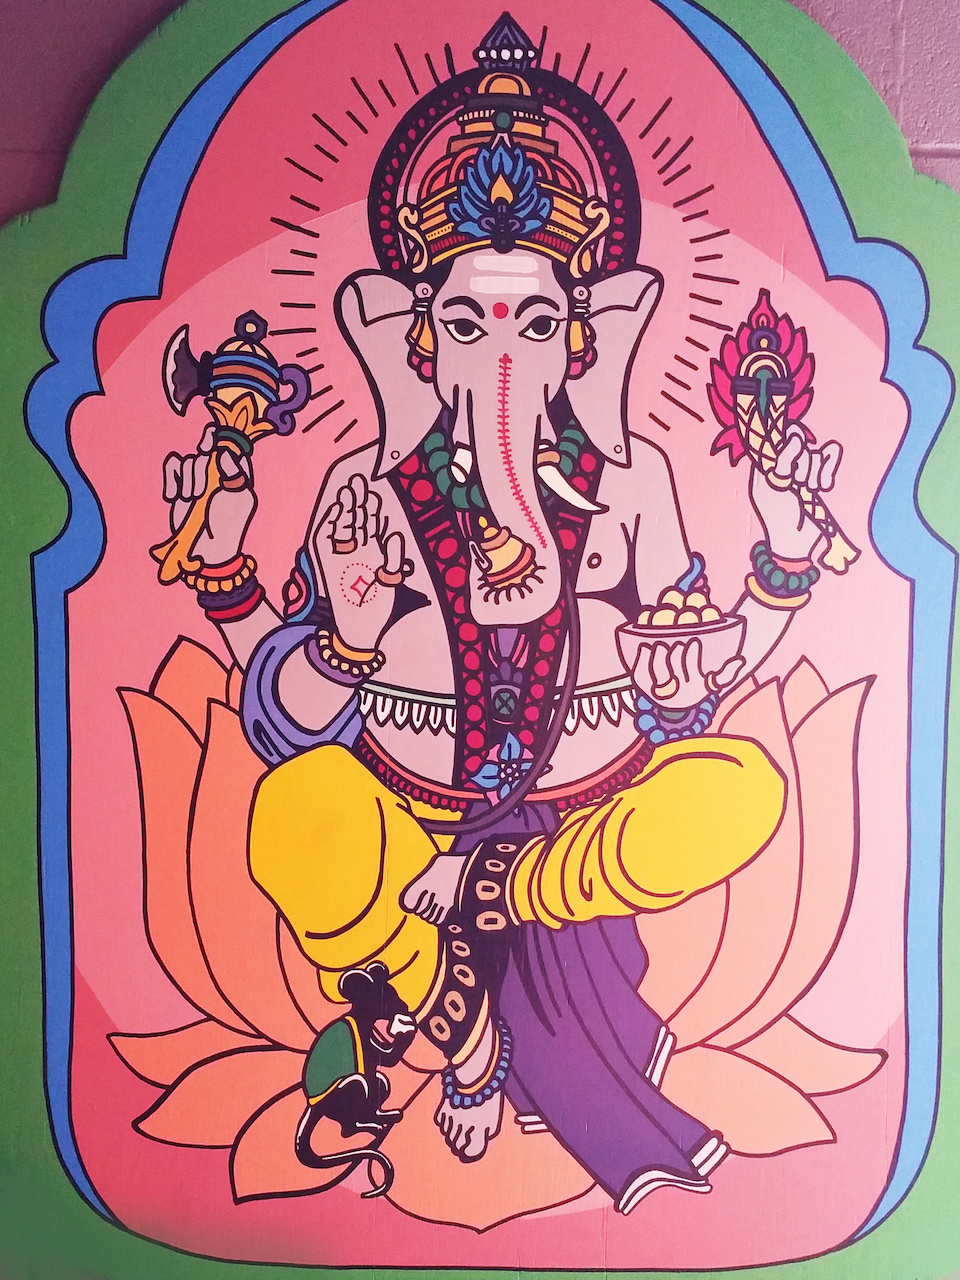 A Buddhist deity painting created by Yellowhammer Creative for wooden goat